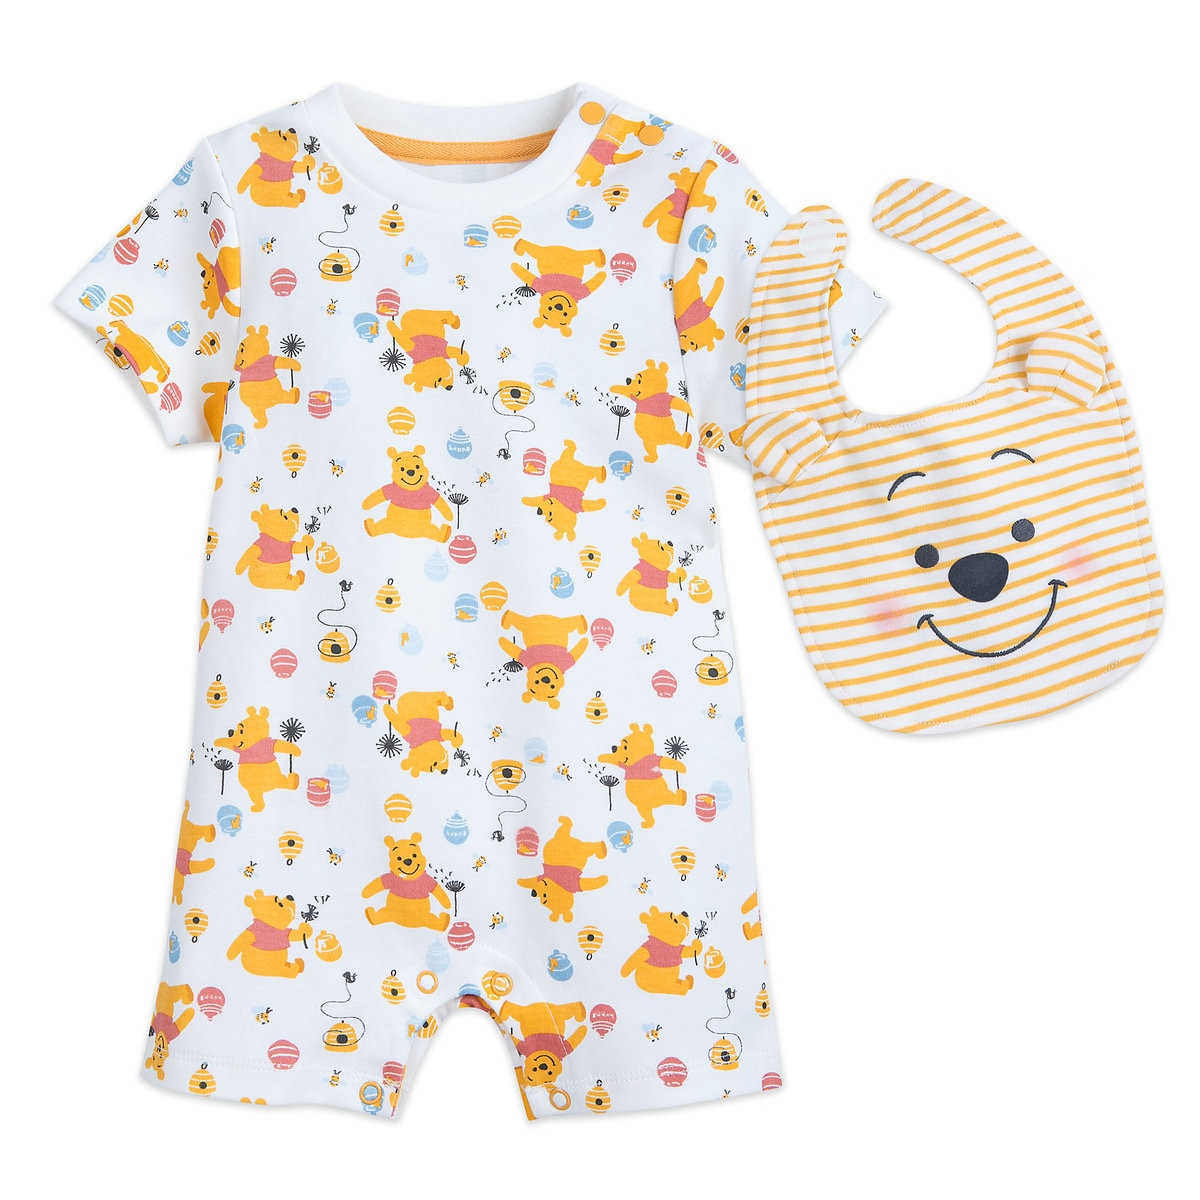 f5ae30ae8 Product Image of Winnie the Pooh Romper and Bib Set for Baby # 1